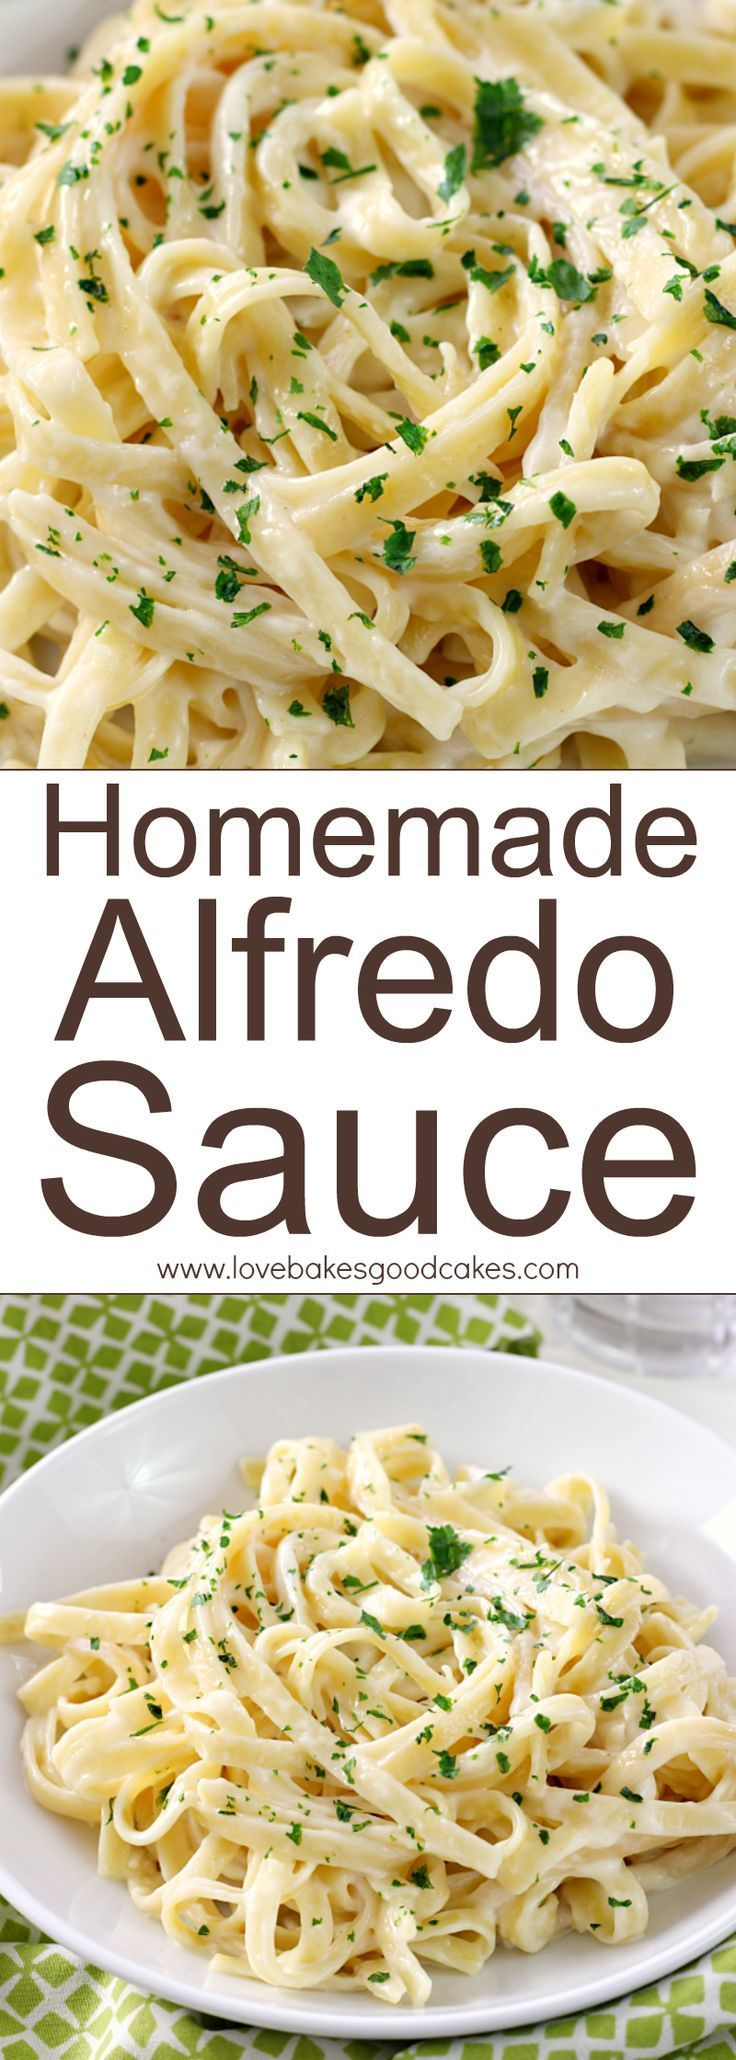 The jarred stuff doesn't even compare to Homemade Alfredo Sauce! Let me show you how quick and easy it is to make from scratch!